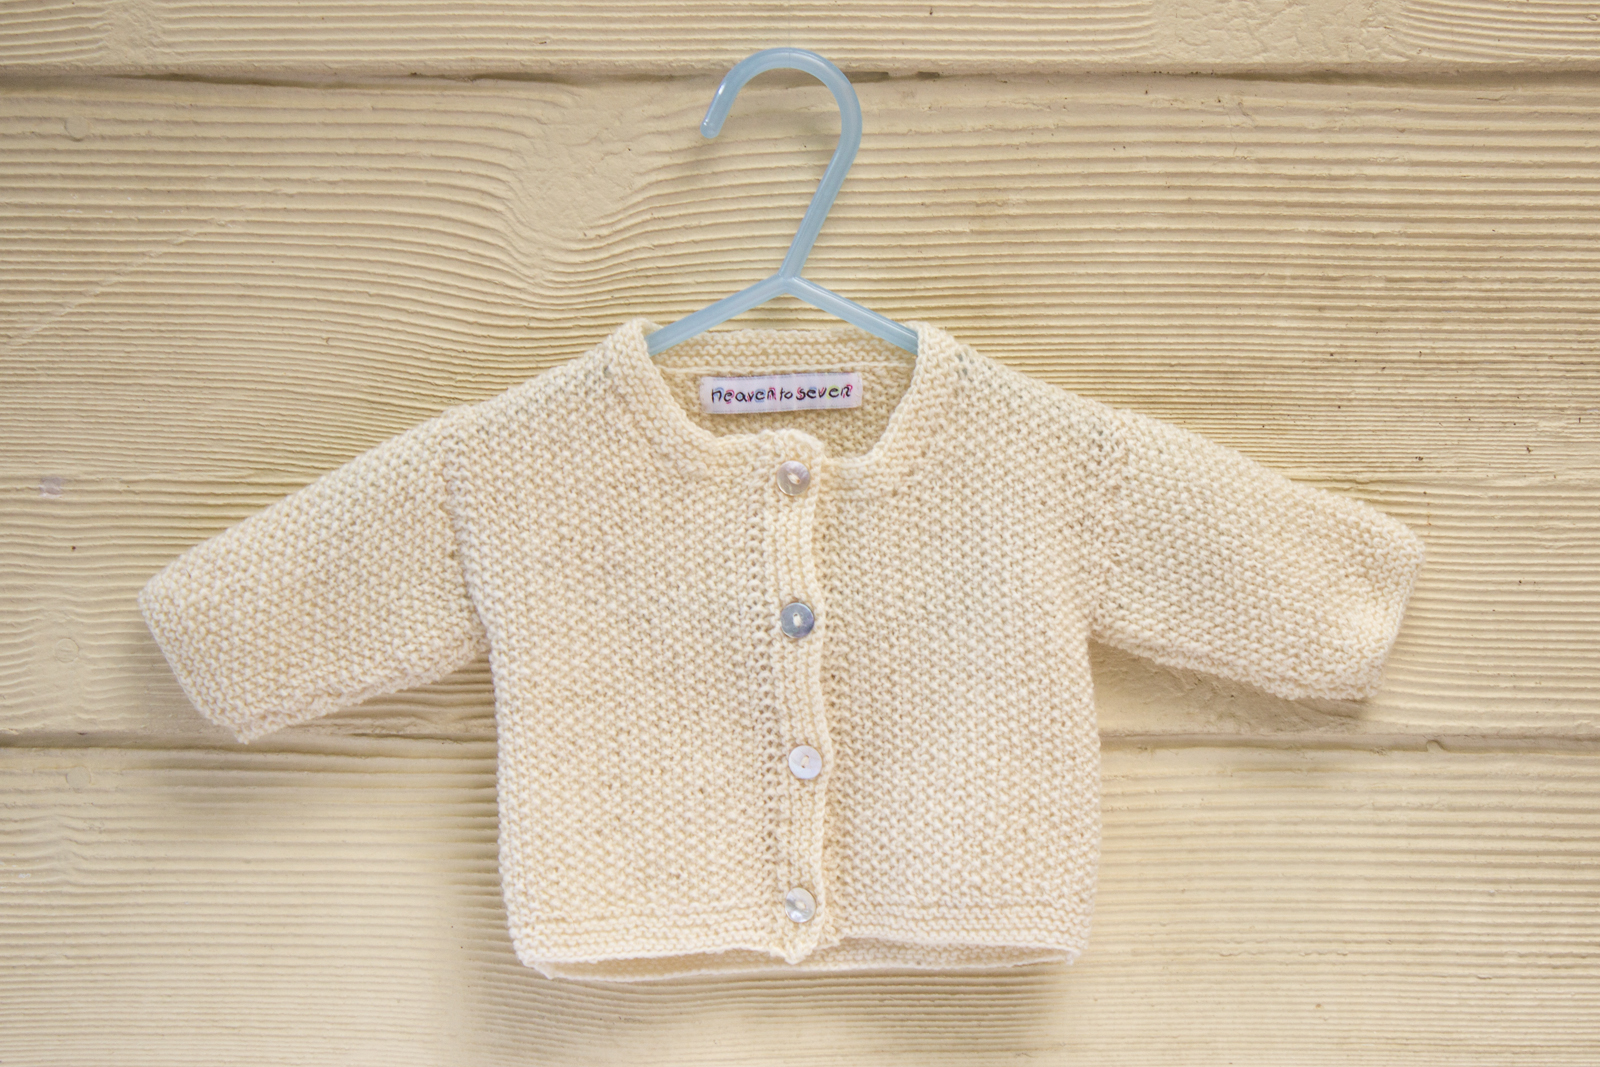 KNITTING PATTERN , Baby Cardigan with Button Closure, Essential Classic Moss Stitch In 4 Sizes